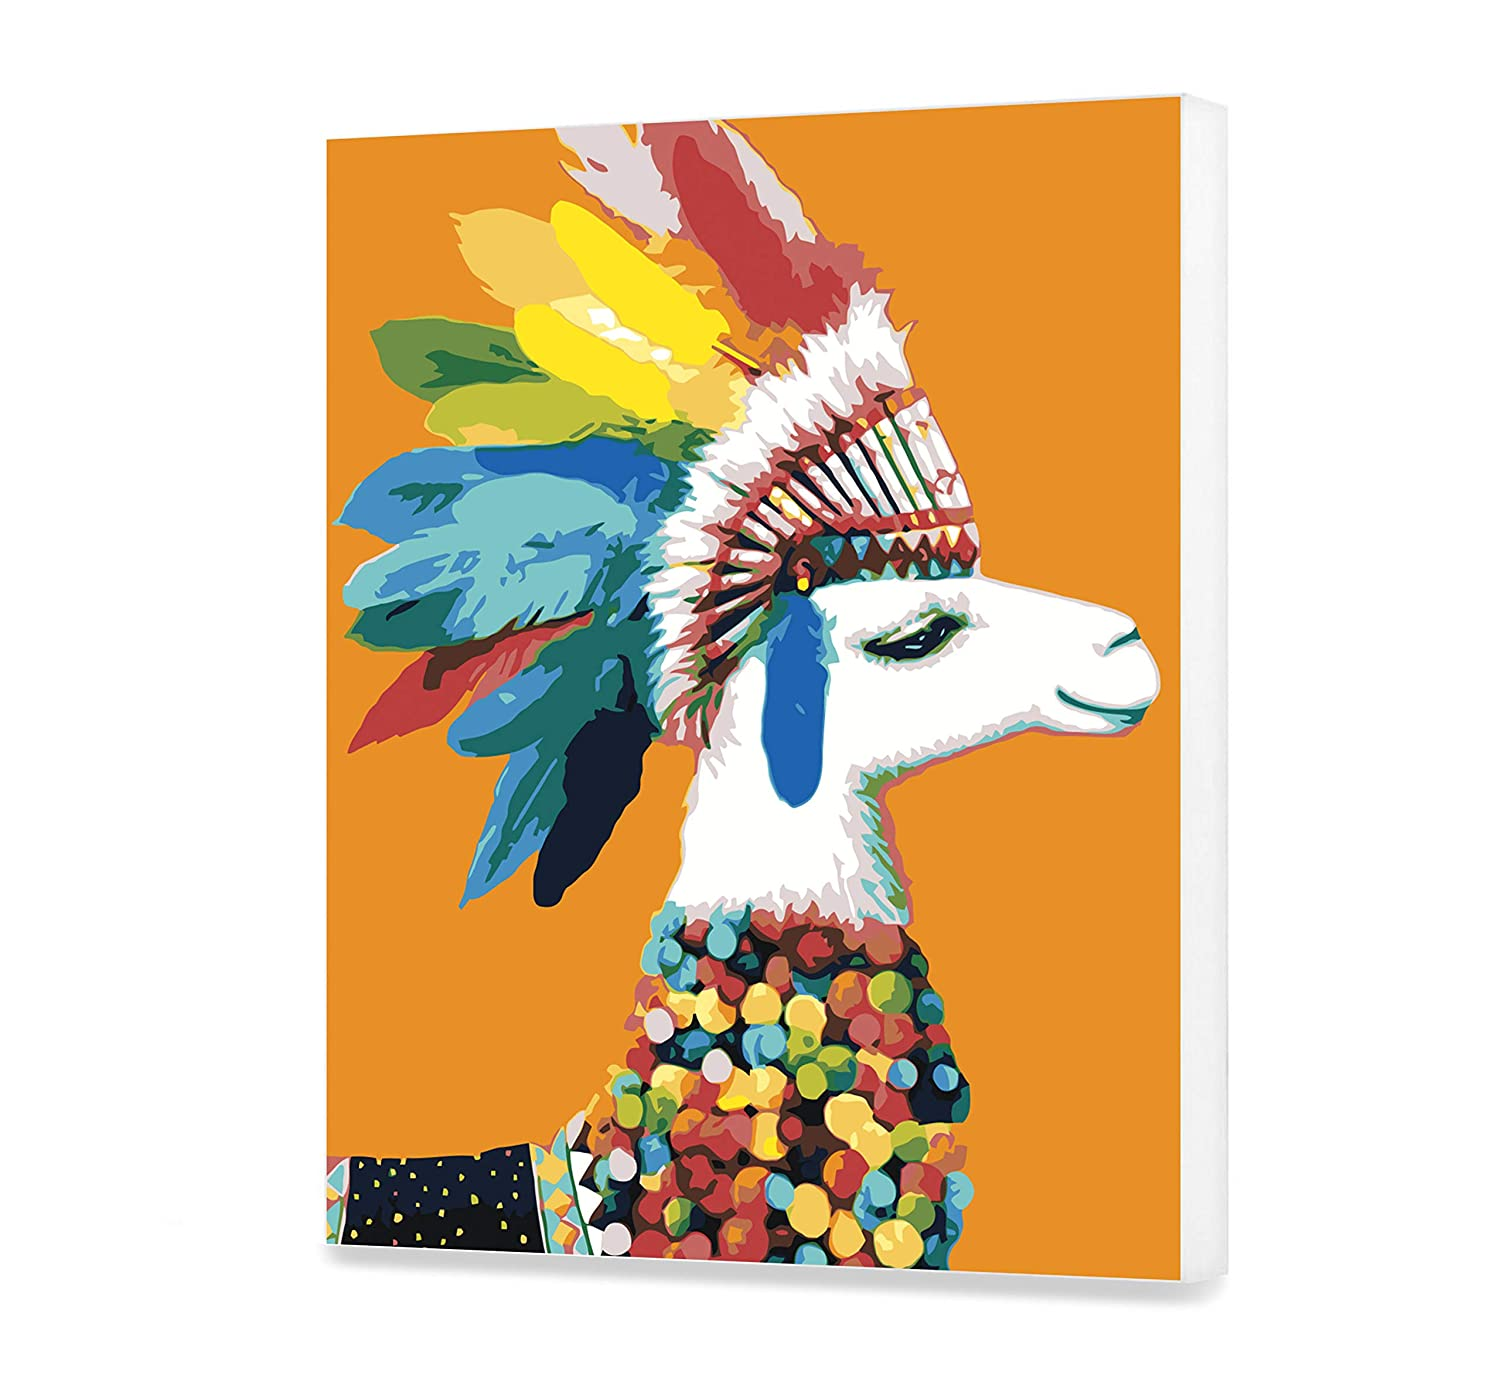 Lama Home Decor DIY Adult Touched Lama Painting by Numbers Colorful Picture Divided by Numbers Kare Design Kit for Adult with Unique Design Perfect Gift